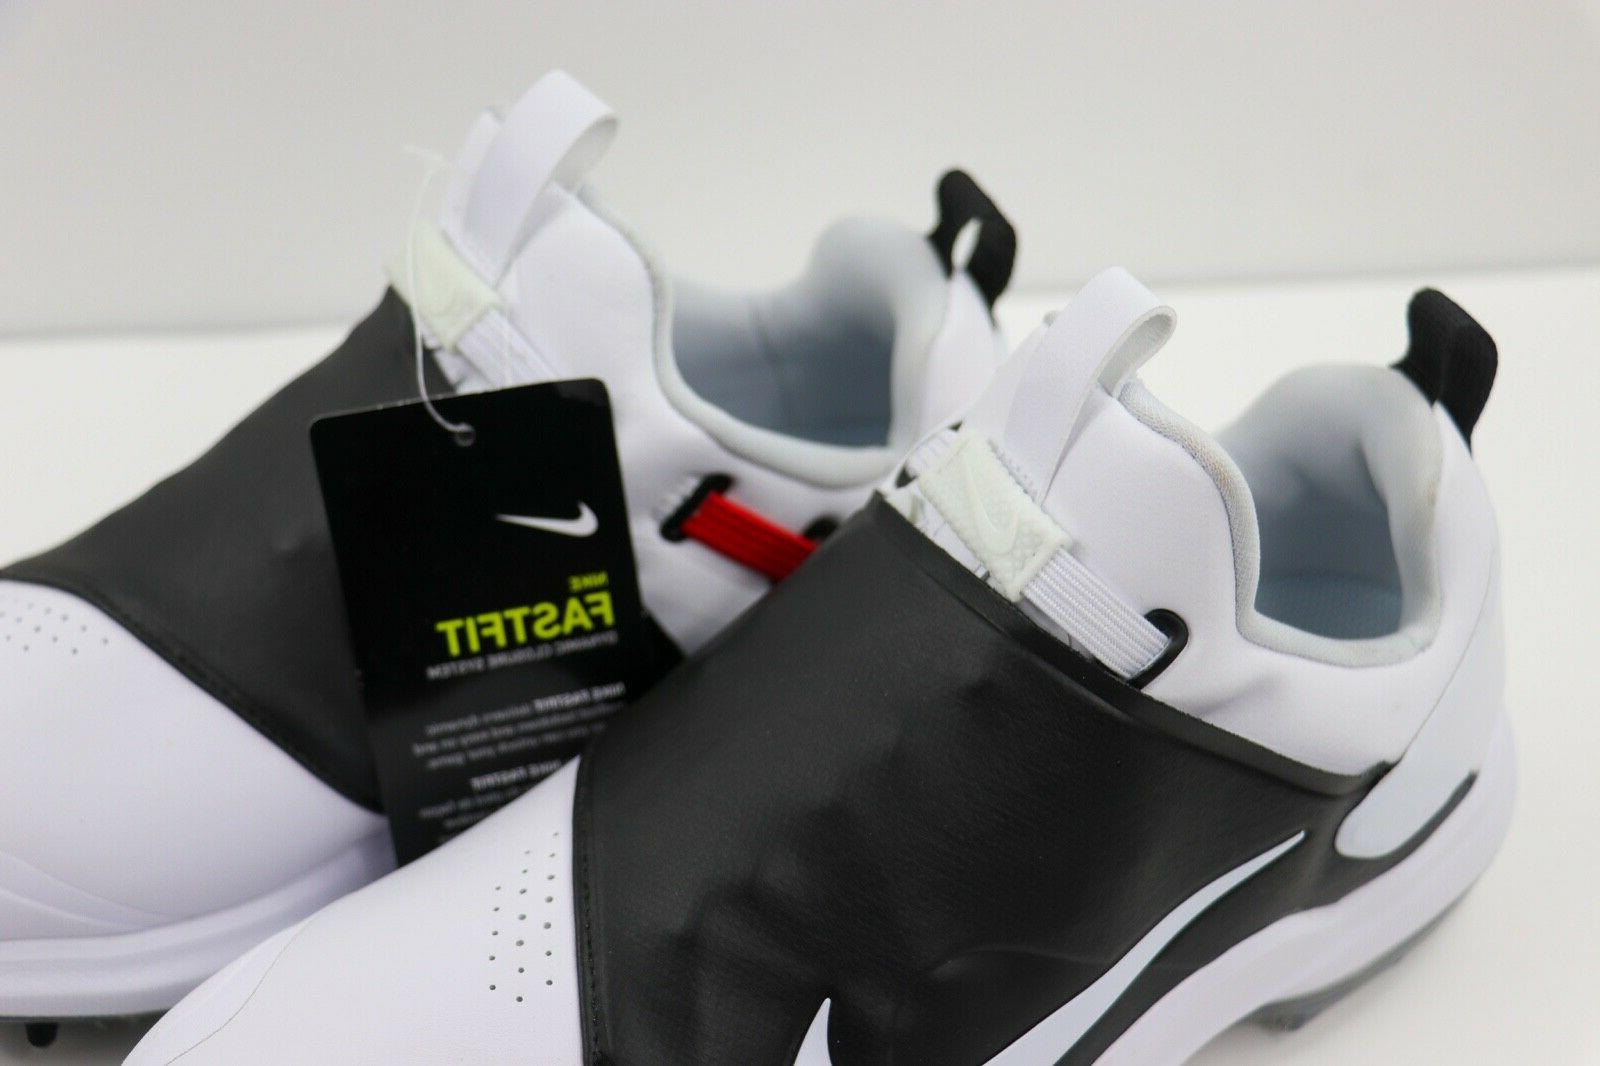 Nike Tour Golf Cleats White Black AO2241-100 Mens